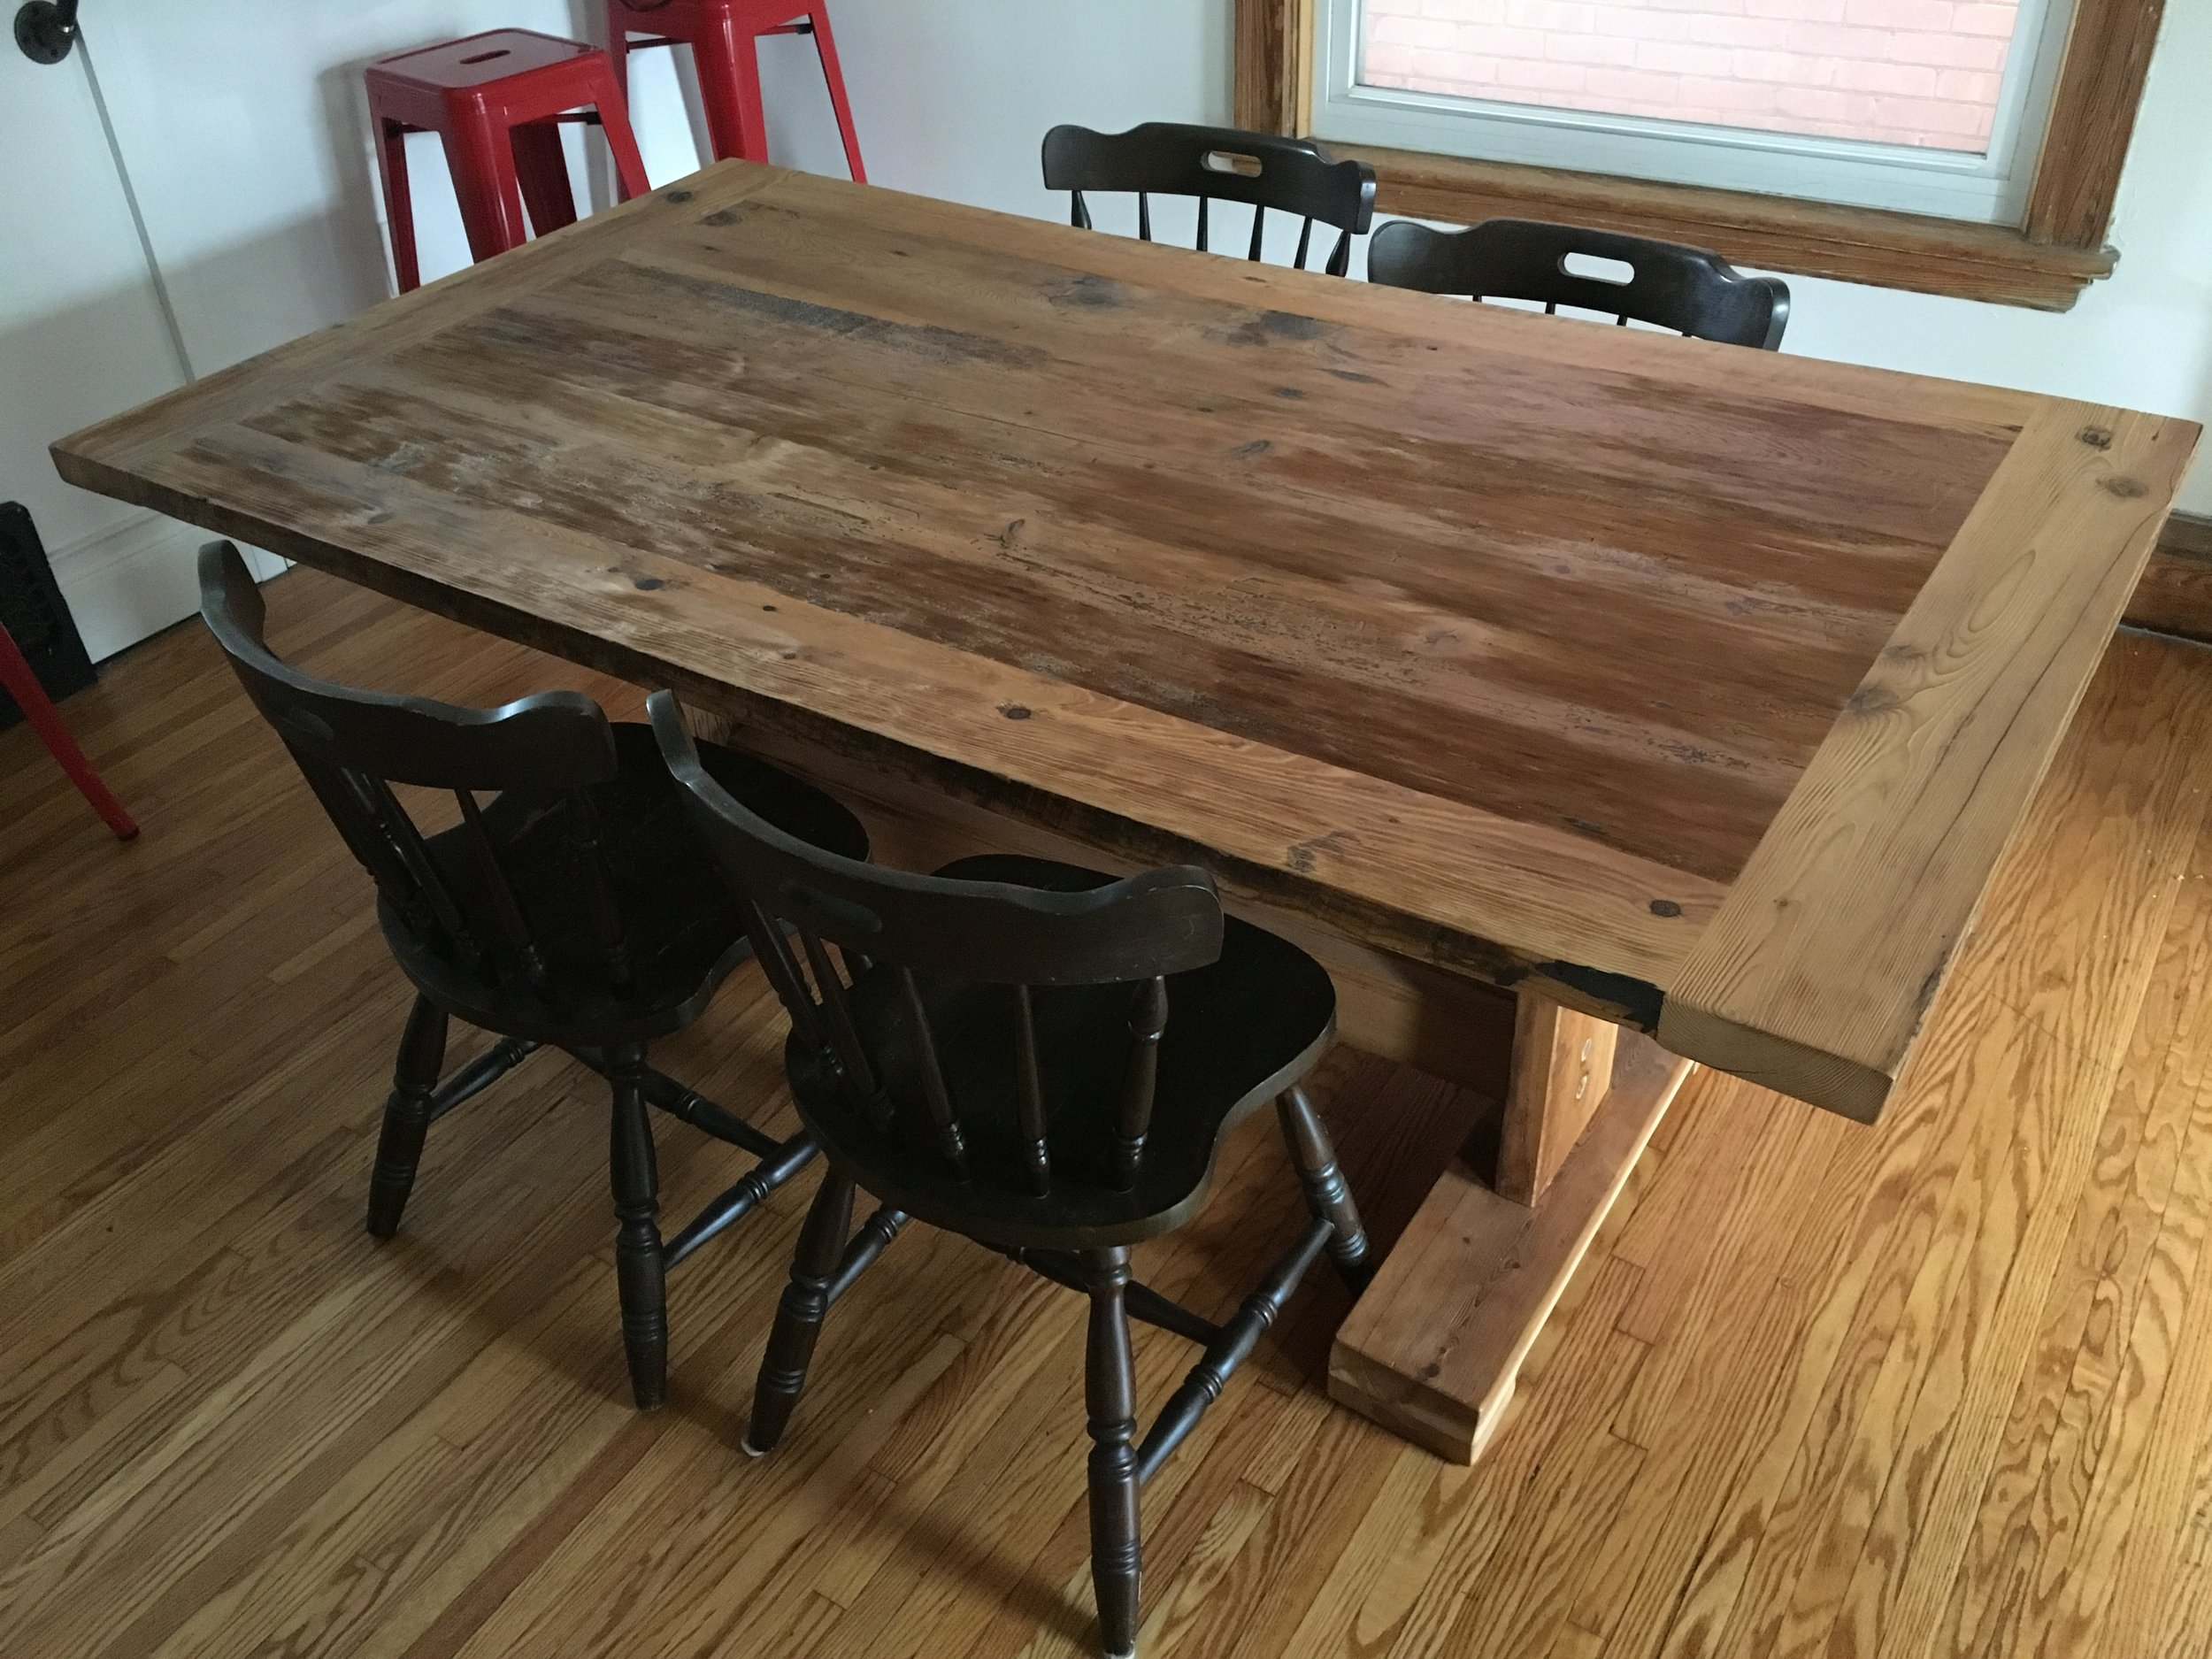 Reclaimed Wood Top with Flat Pedestal Base in Matching Wood